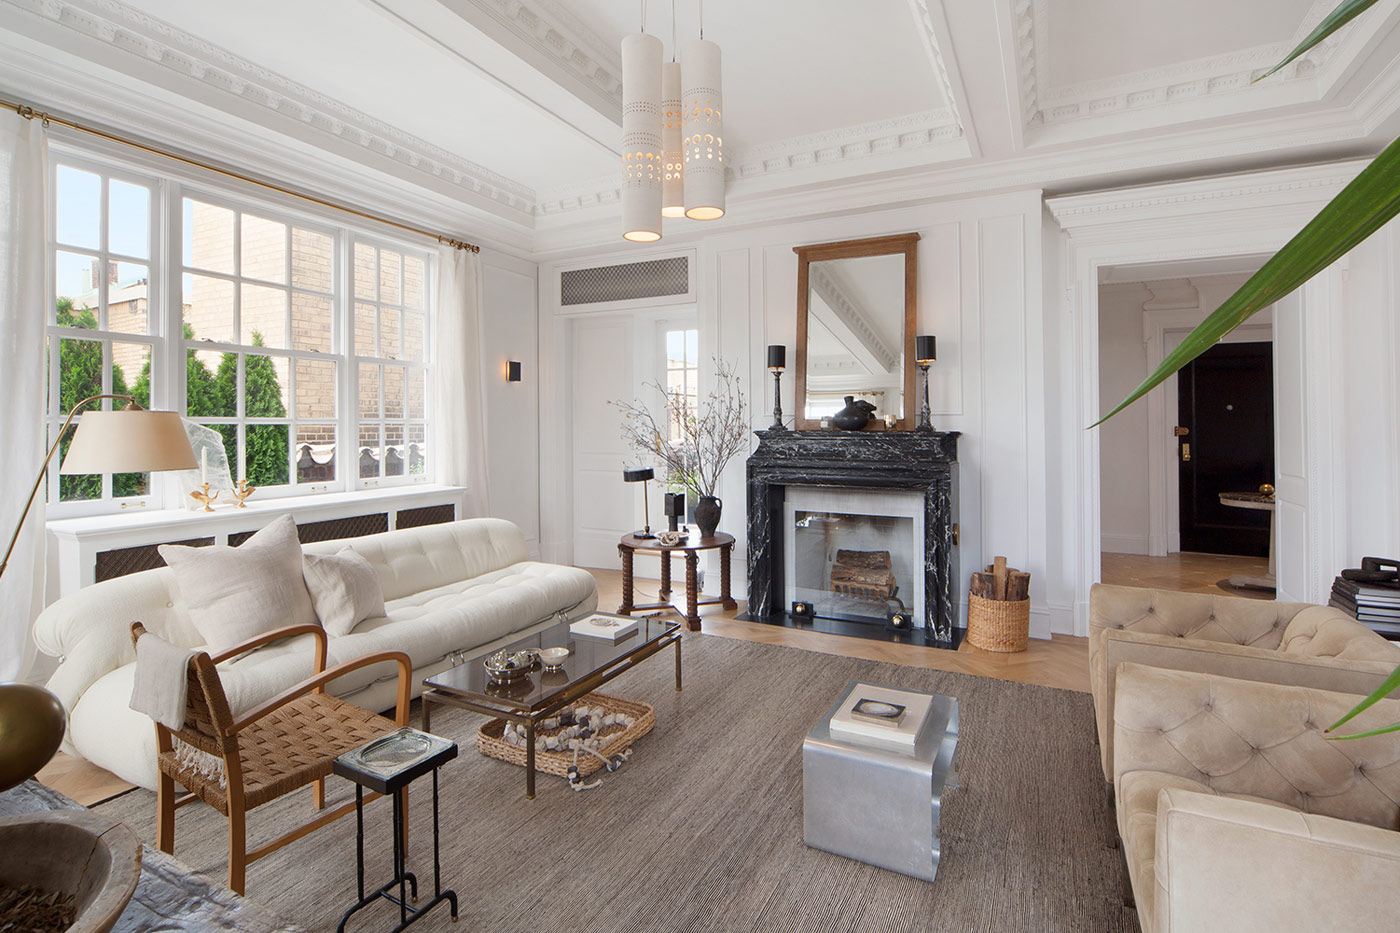 Nate berkus 39 s manhattan home is for sale for Home design zillow